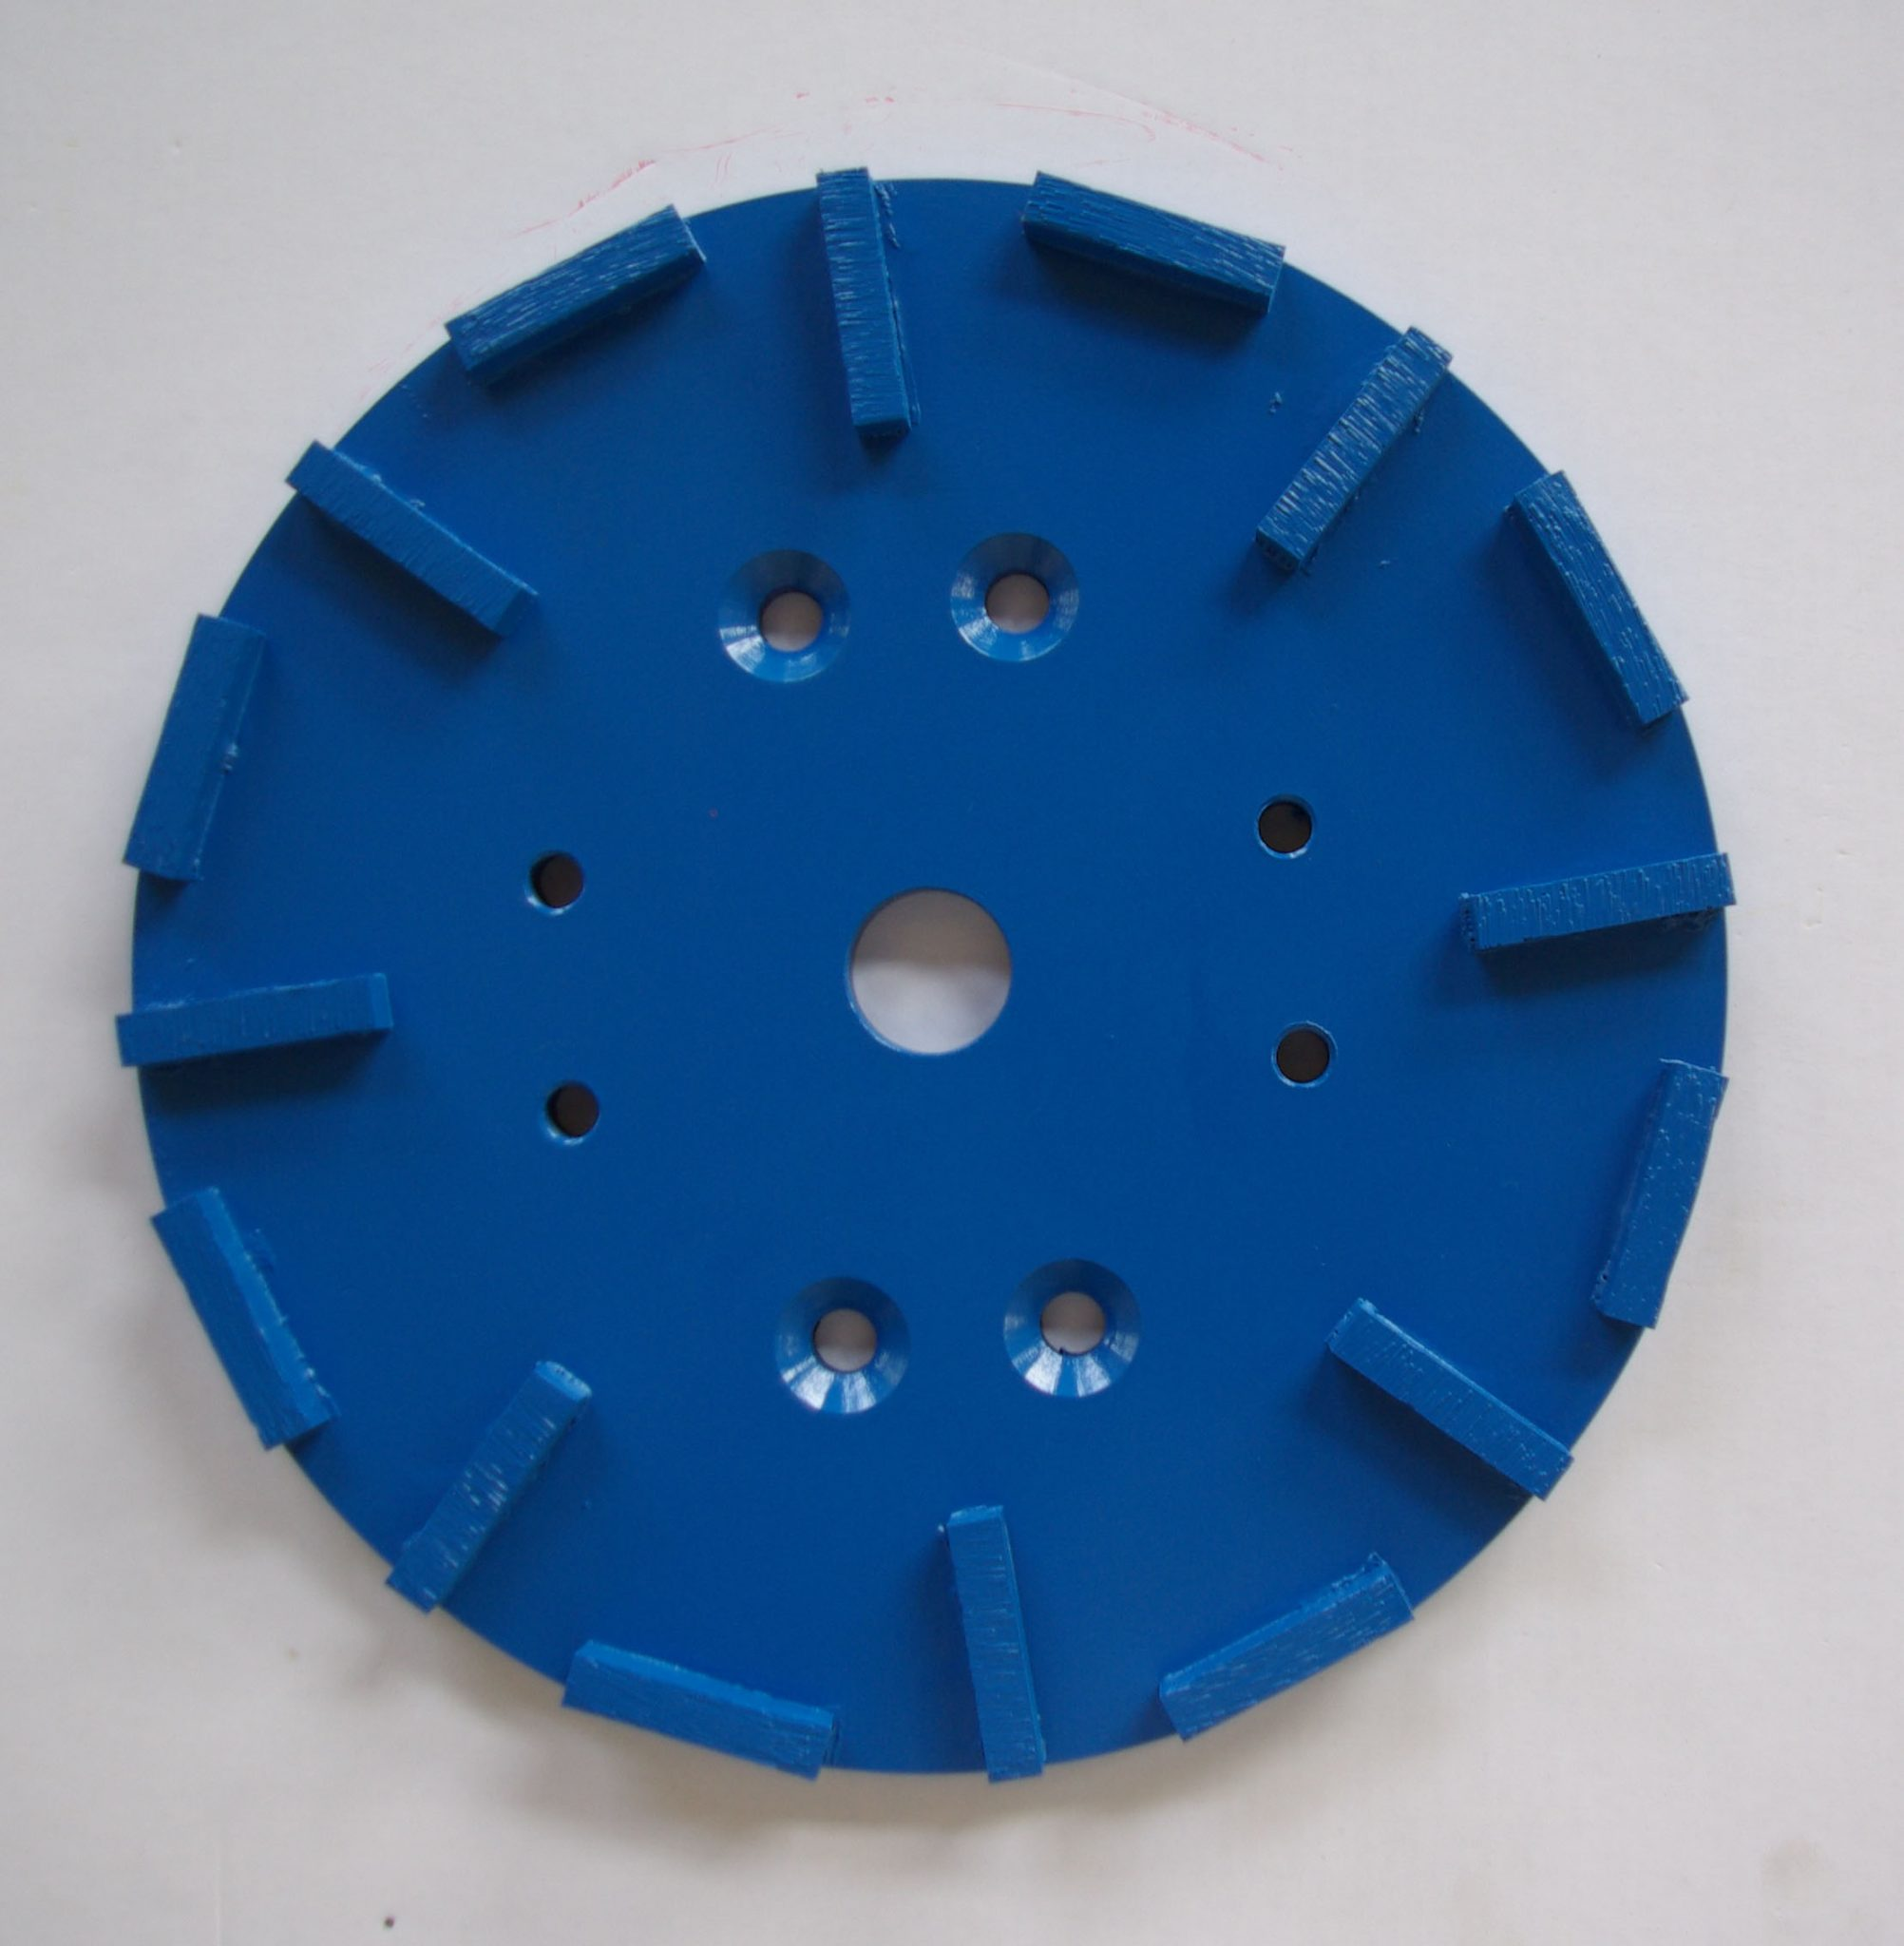 250mm grinding heads for concrete with 4nos M10 threads and 4 countersunk hole